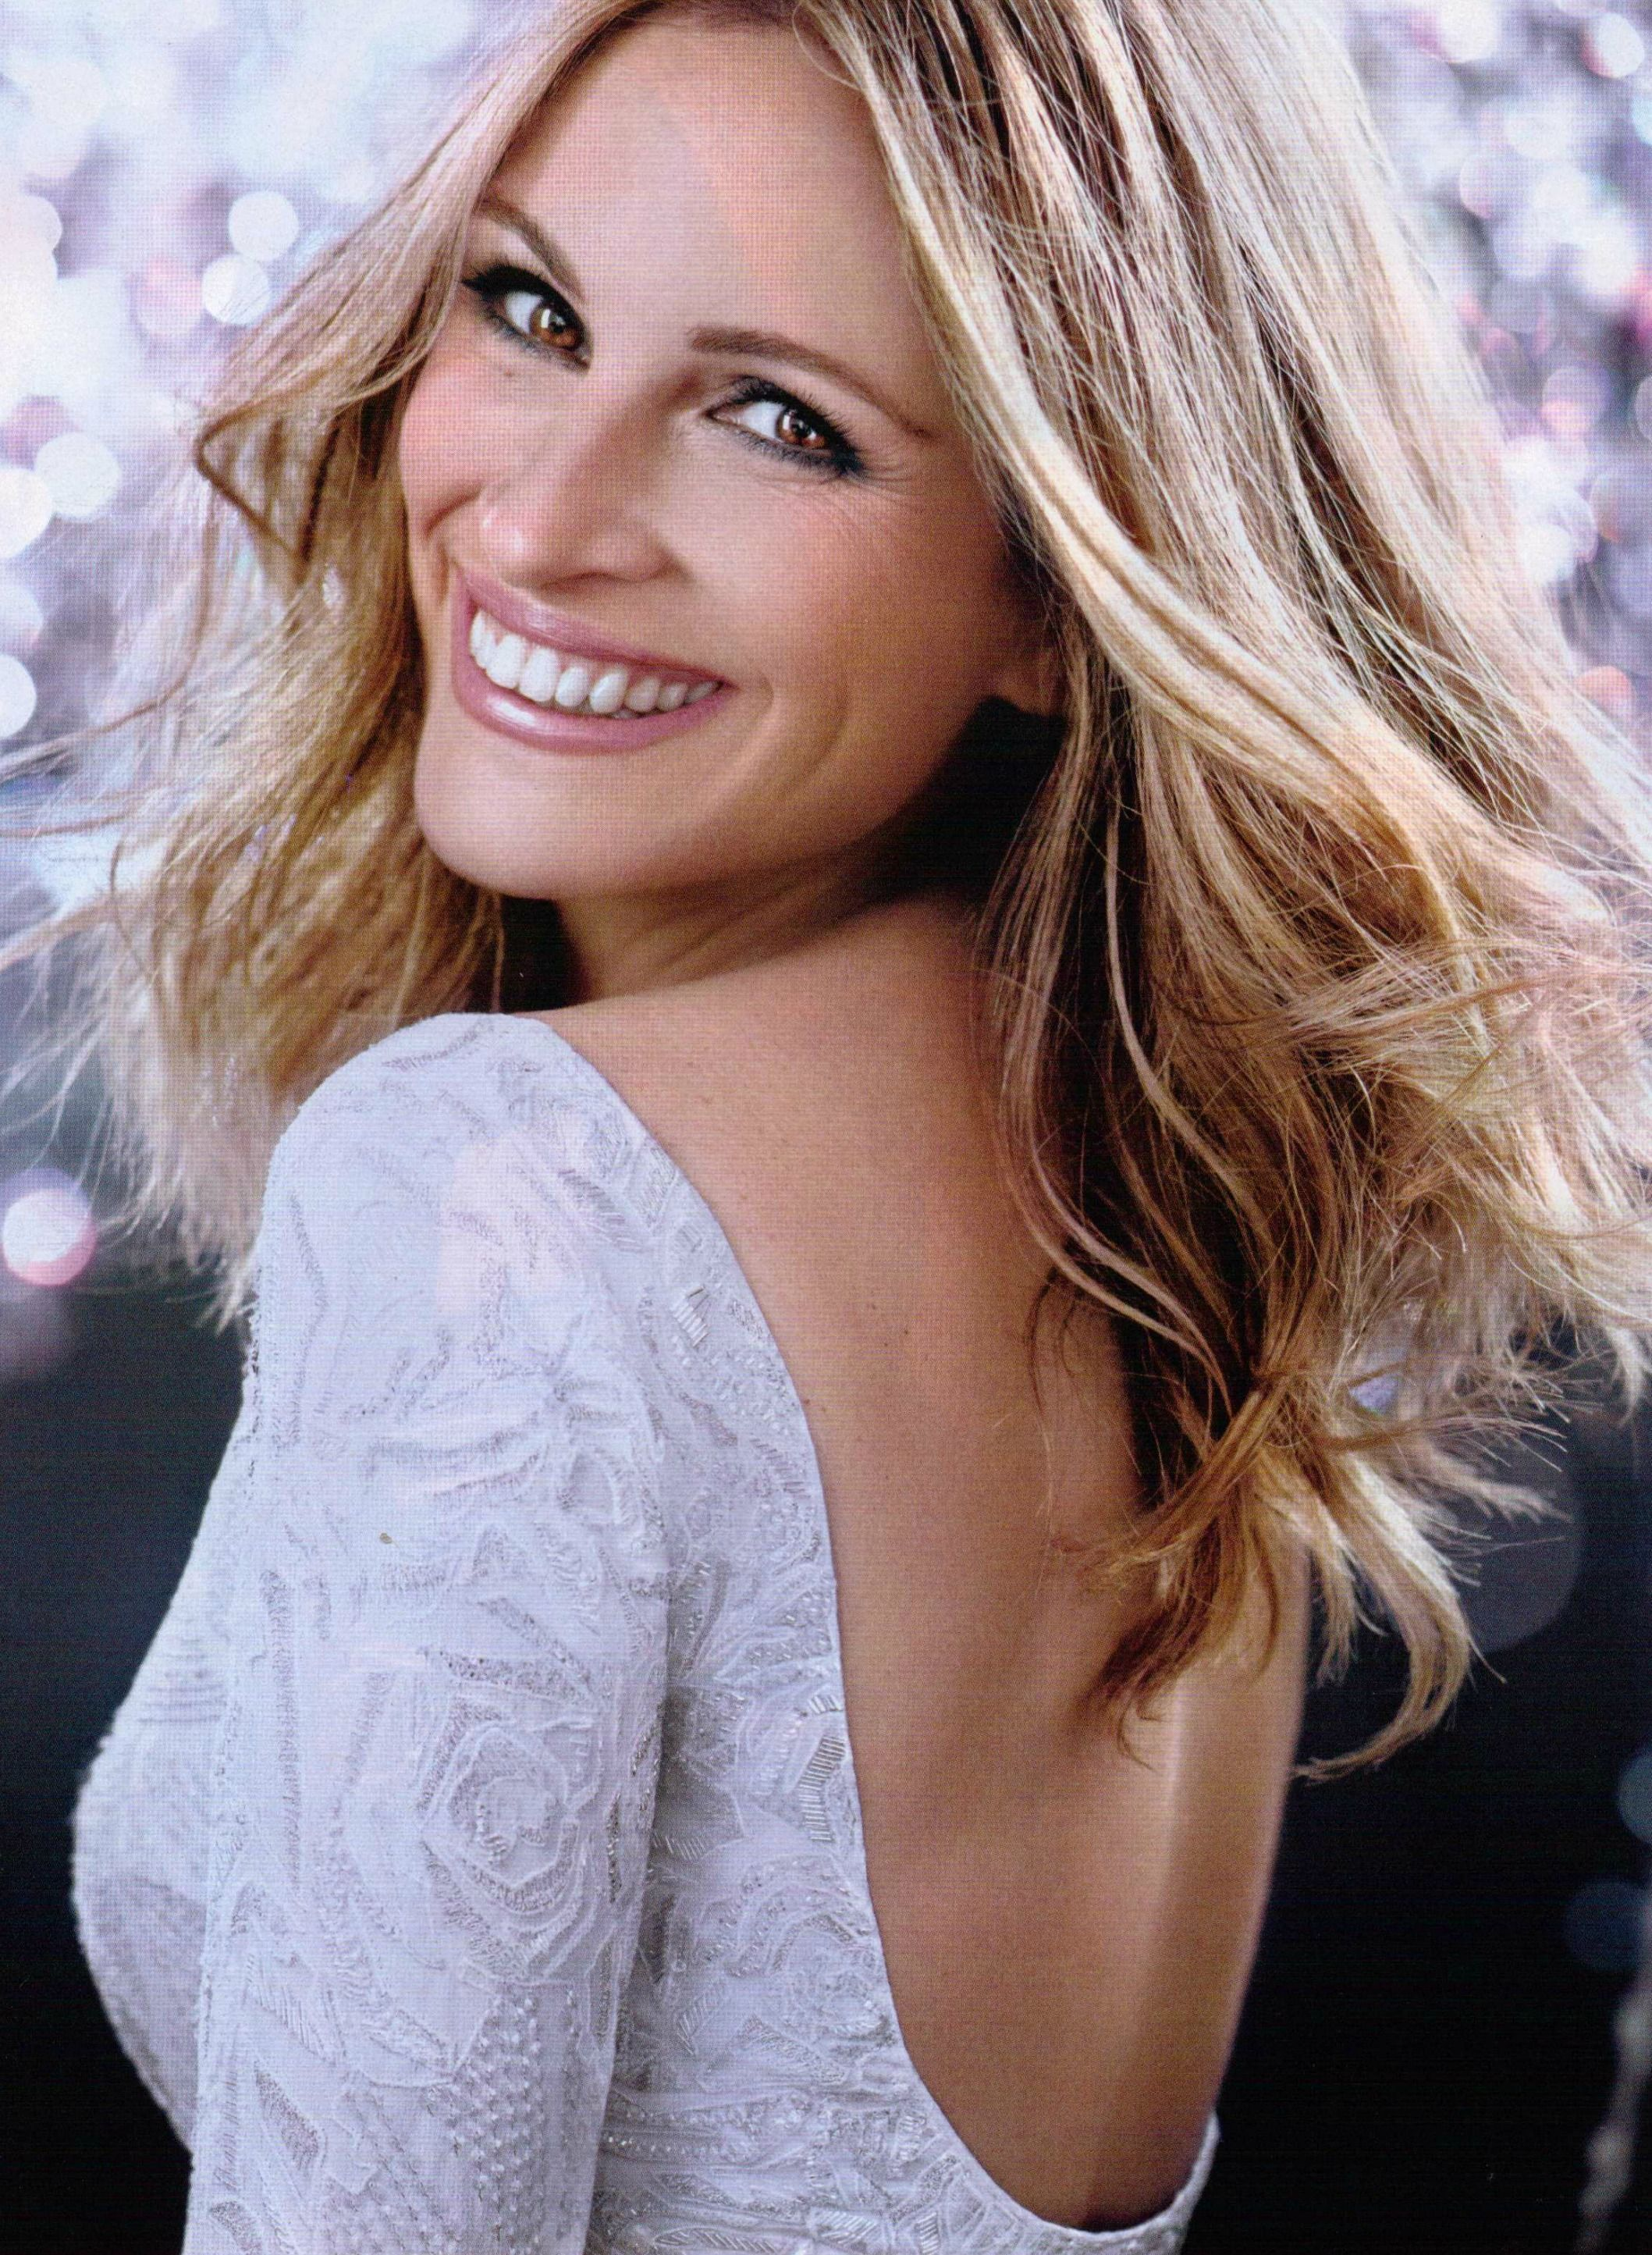 Celebrites Nova Patra nudes (41 photo), Tits, Is a cute, Selfie, cleavage 2017